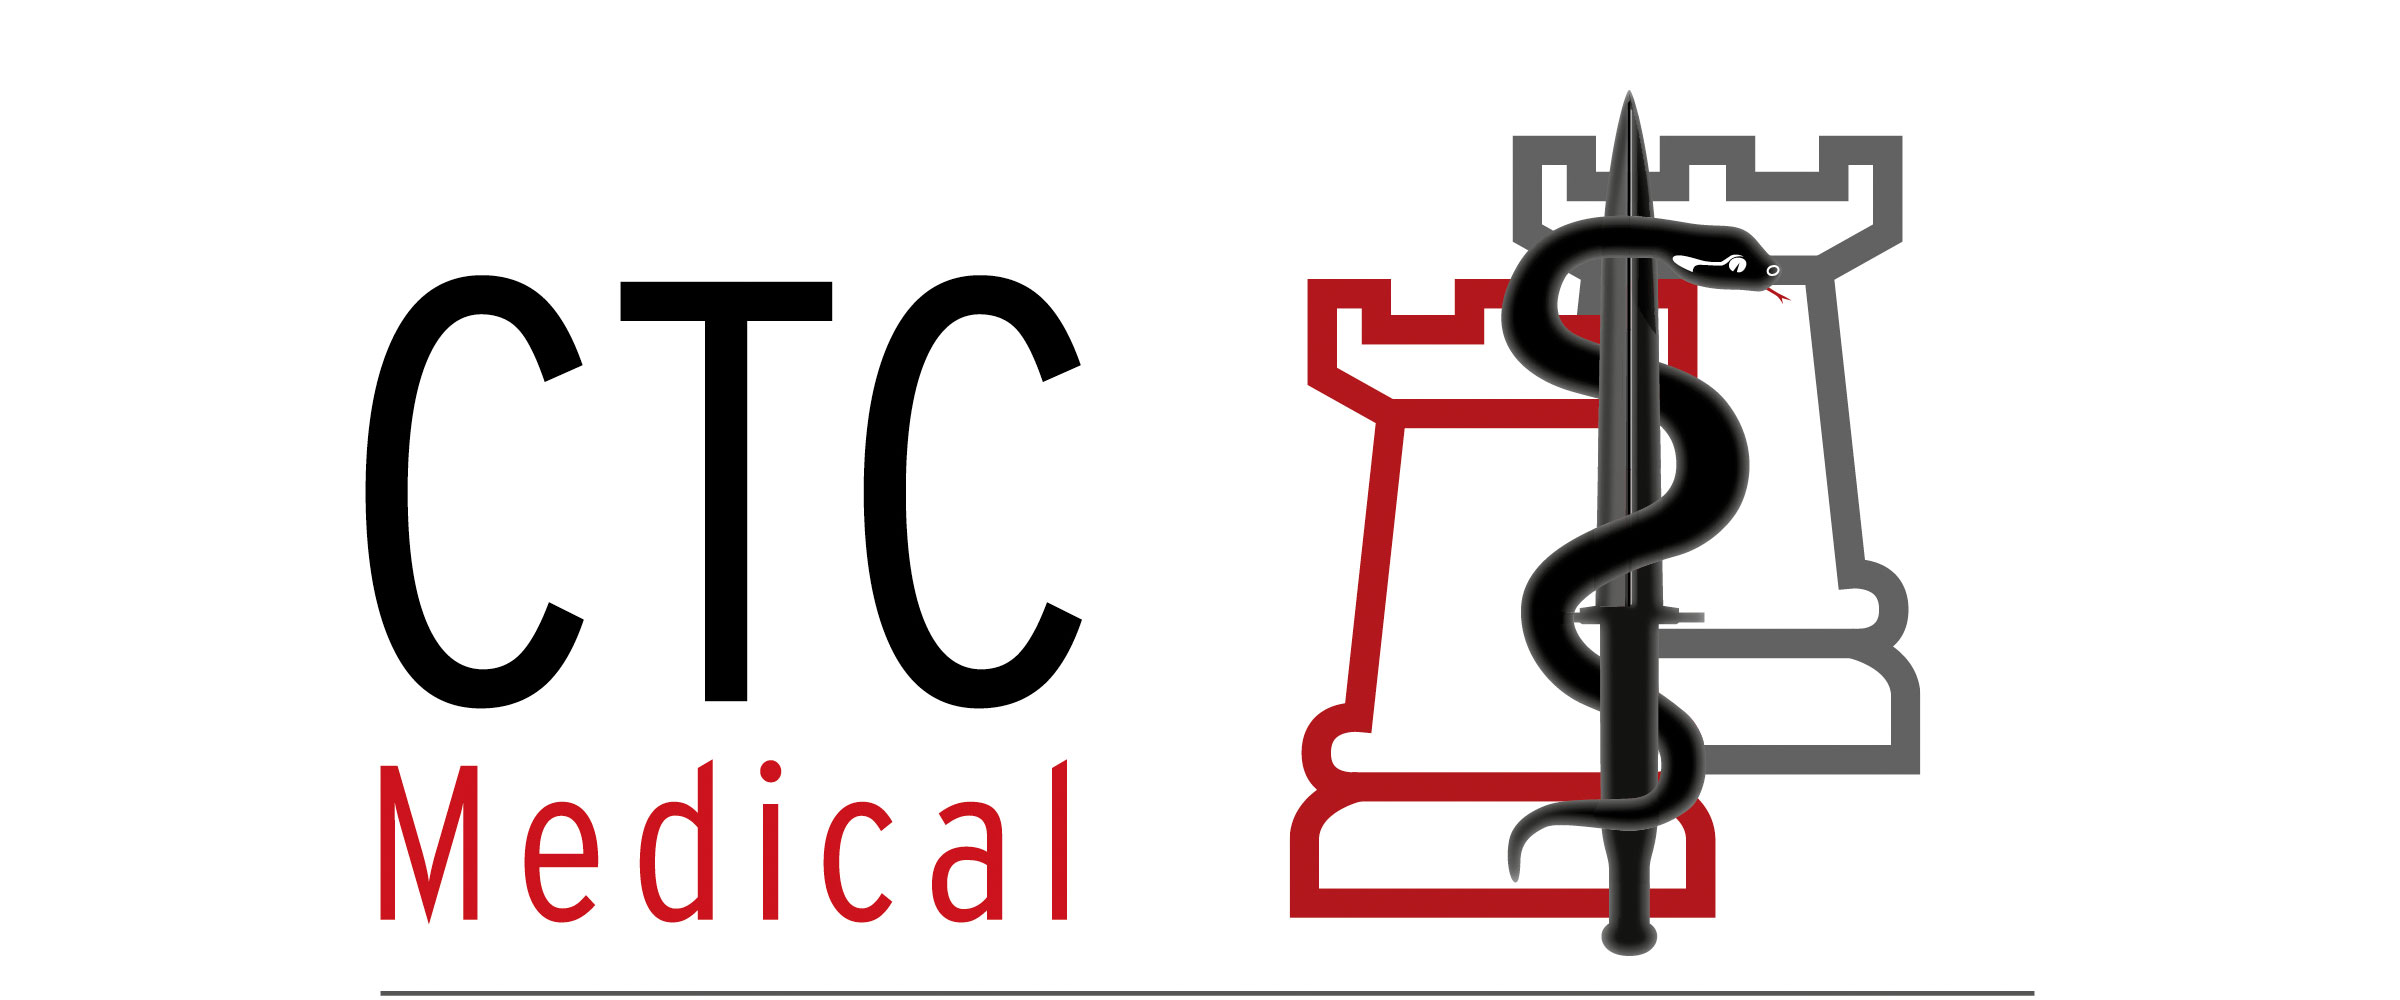 CTC Medical GmbH